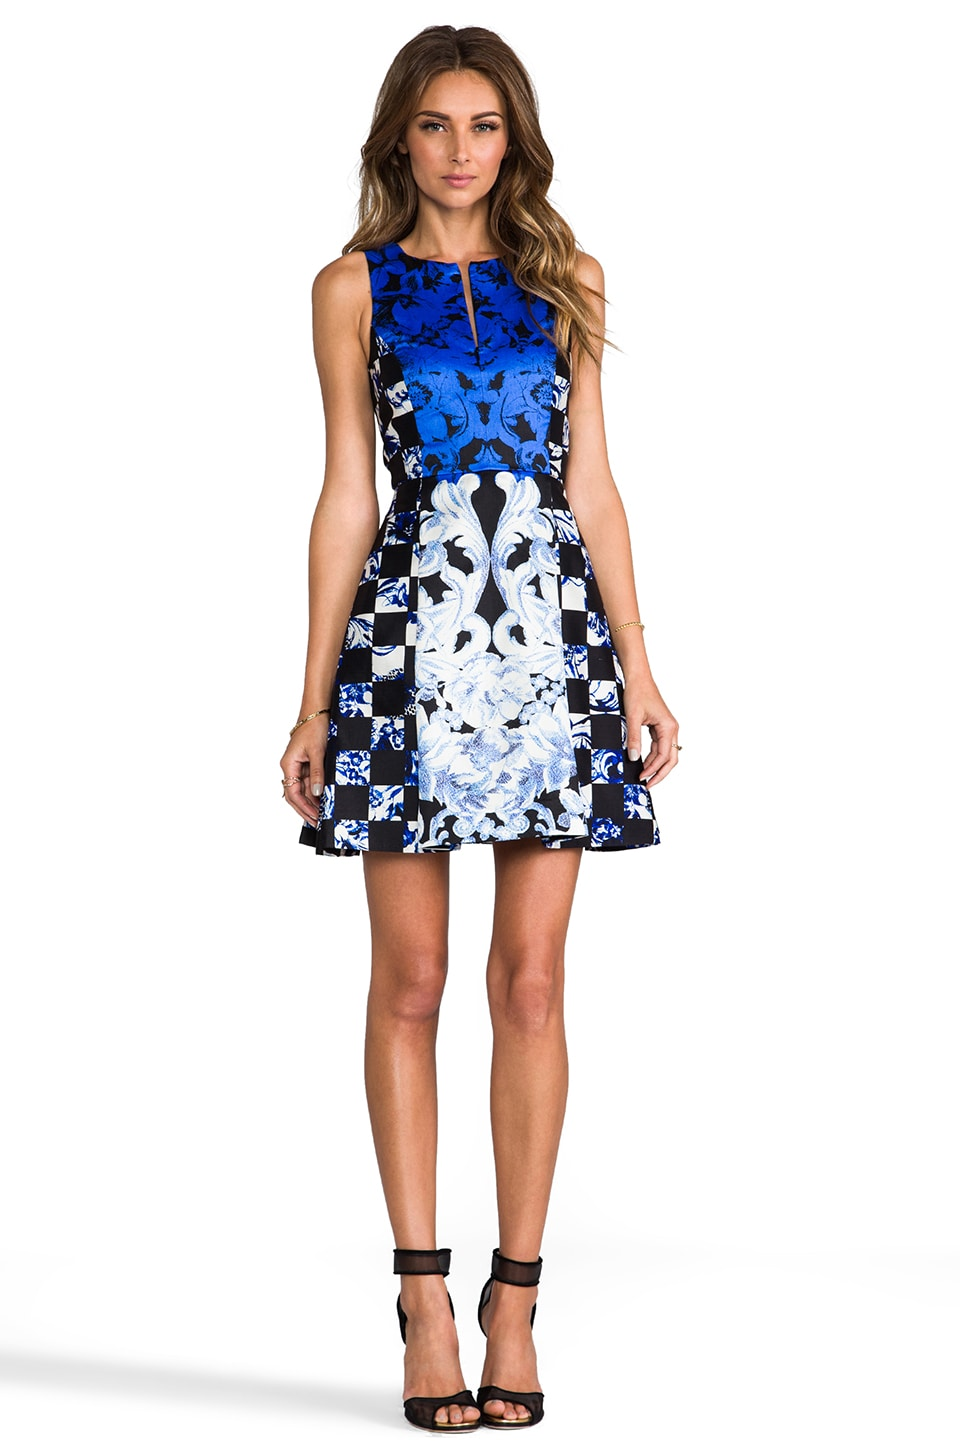 Tibi Rococo Check Dress in Electric Blue Multi